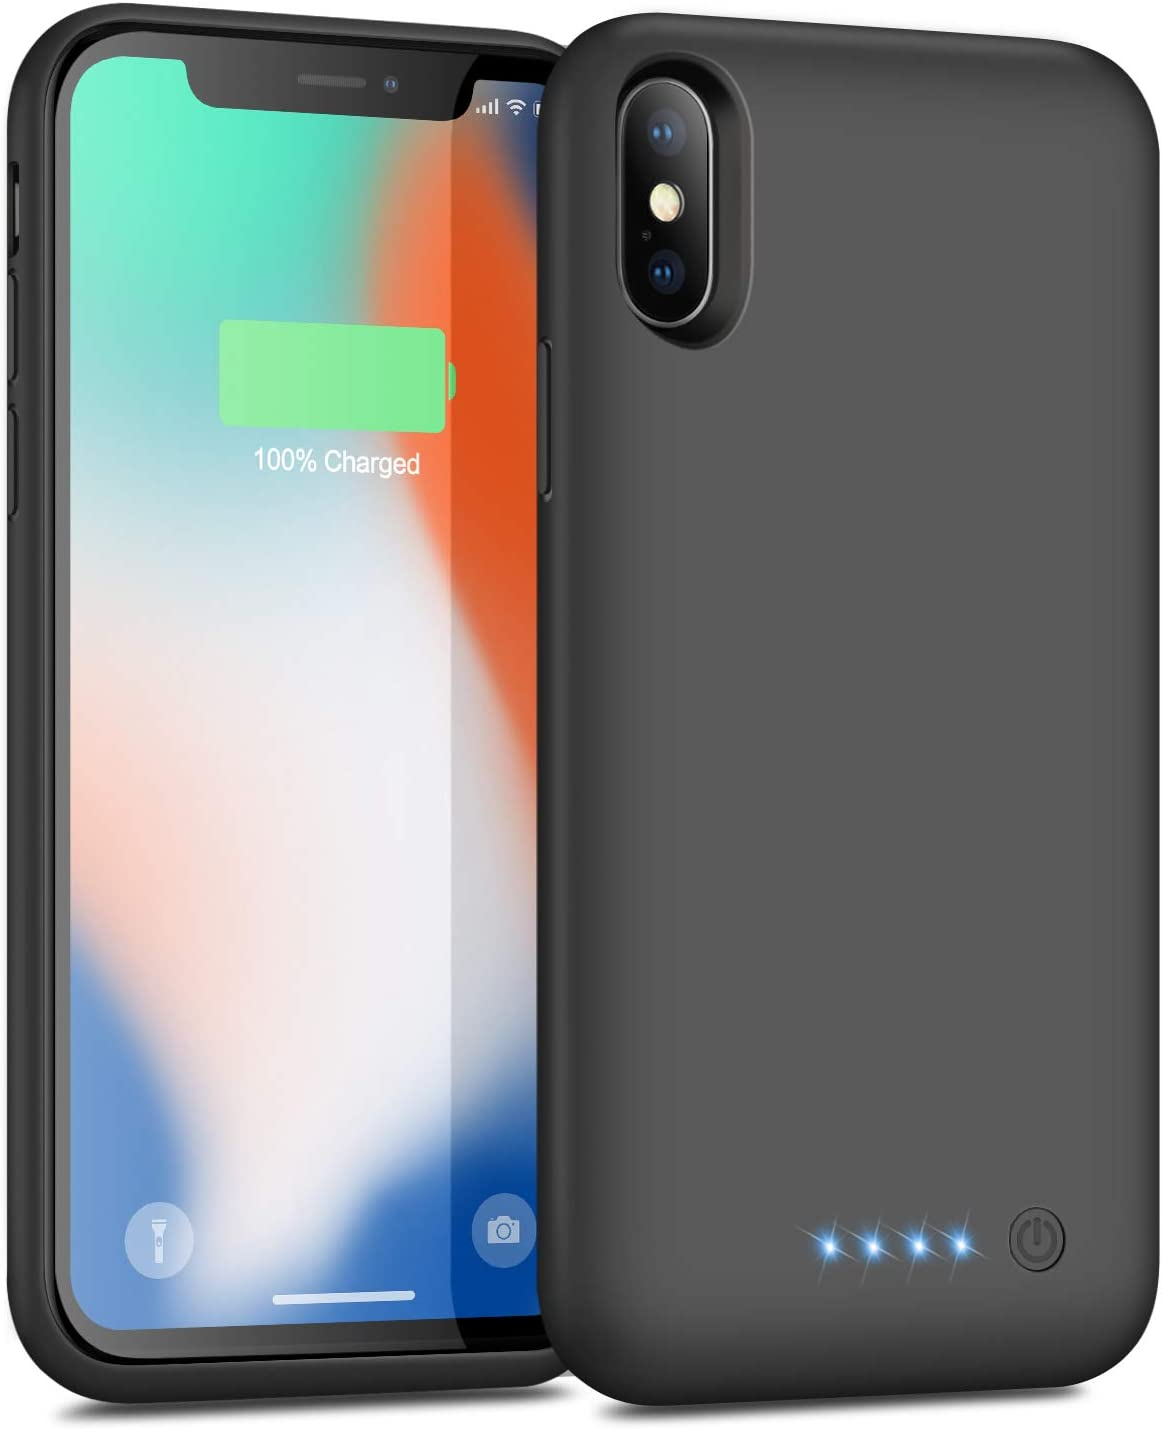 Amazon Com Battery Case For Iphone X Xs 10 Portable Battery Pack 6500mah Rechargeable Charging Case Smart Battery Case For Iphone X Xs 10 External Battery Phone Cover 5 8 Inch Charging Case Black